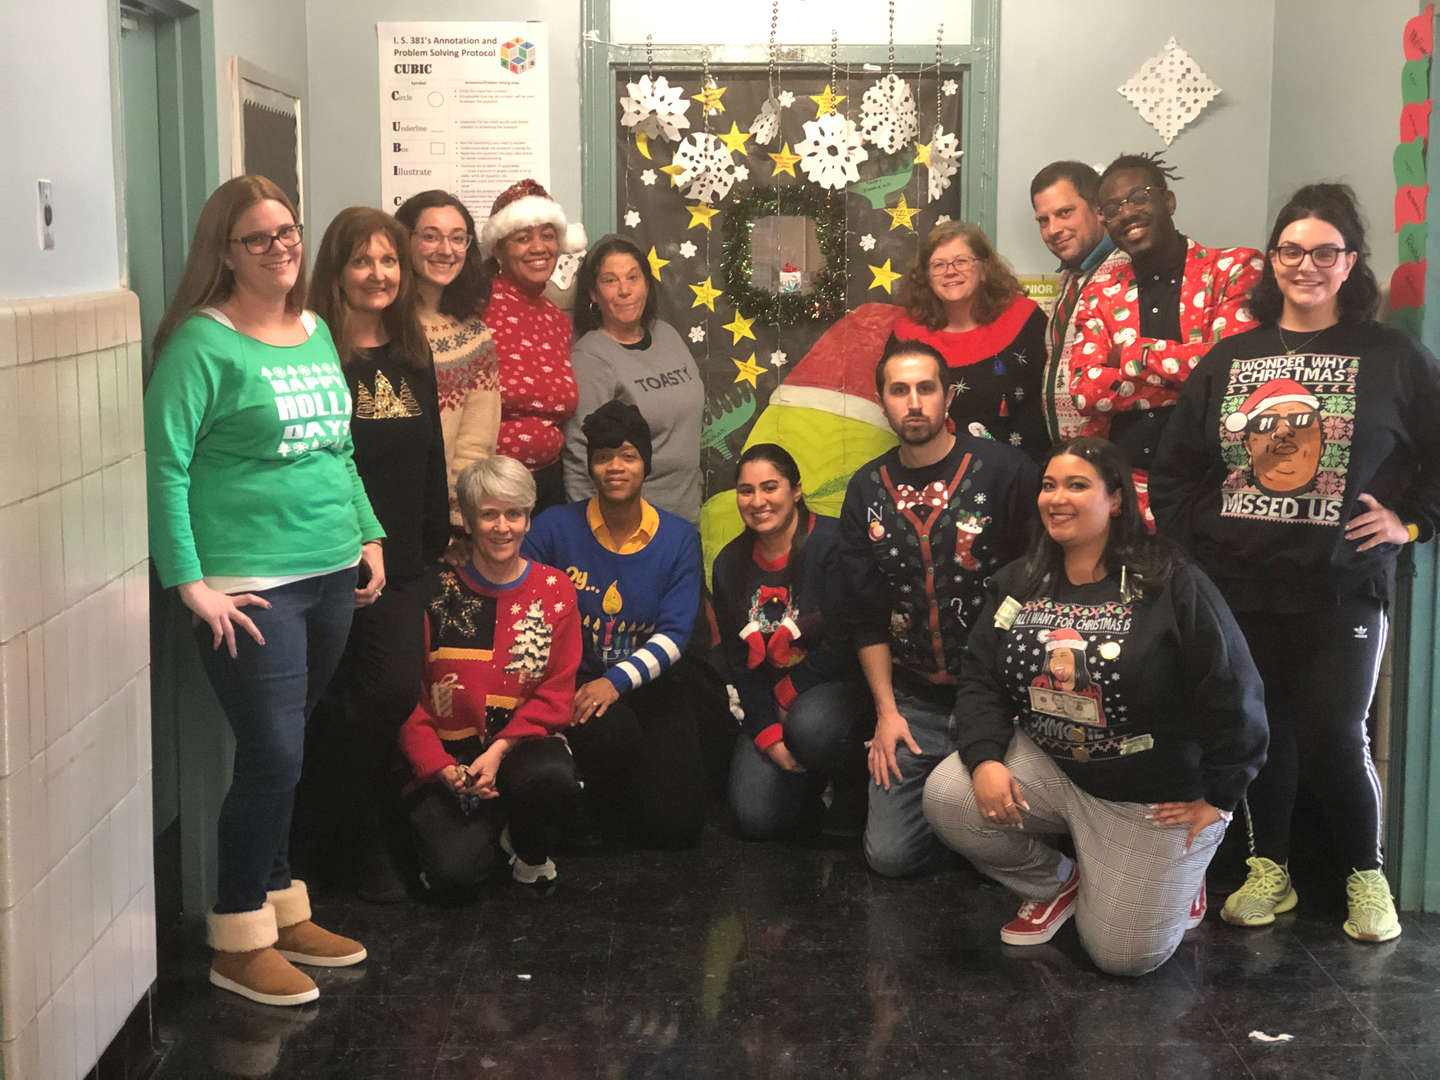 IS 381 Staff in their Holiday sweaters